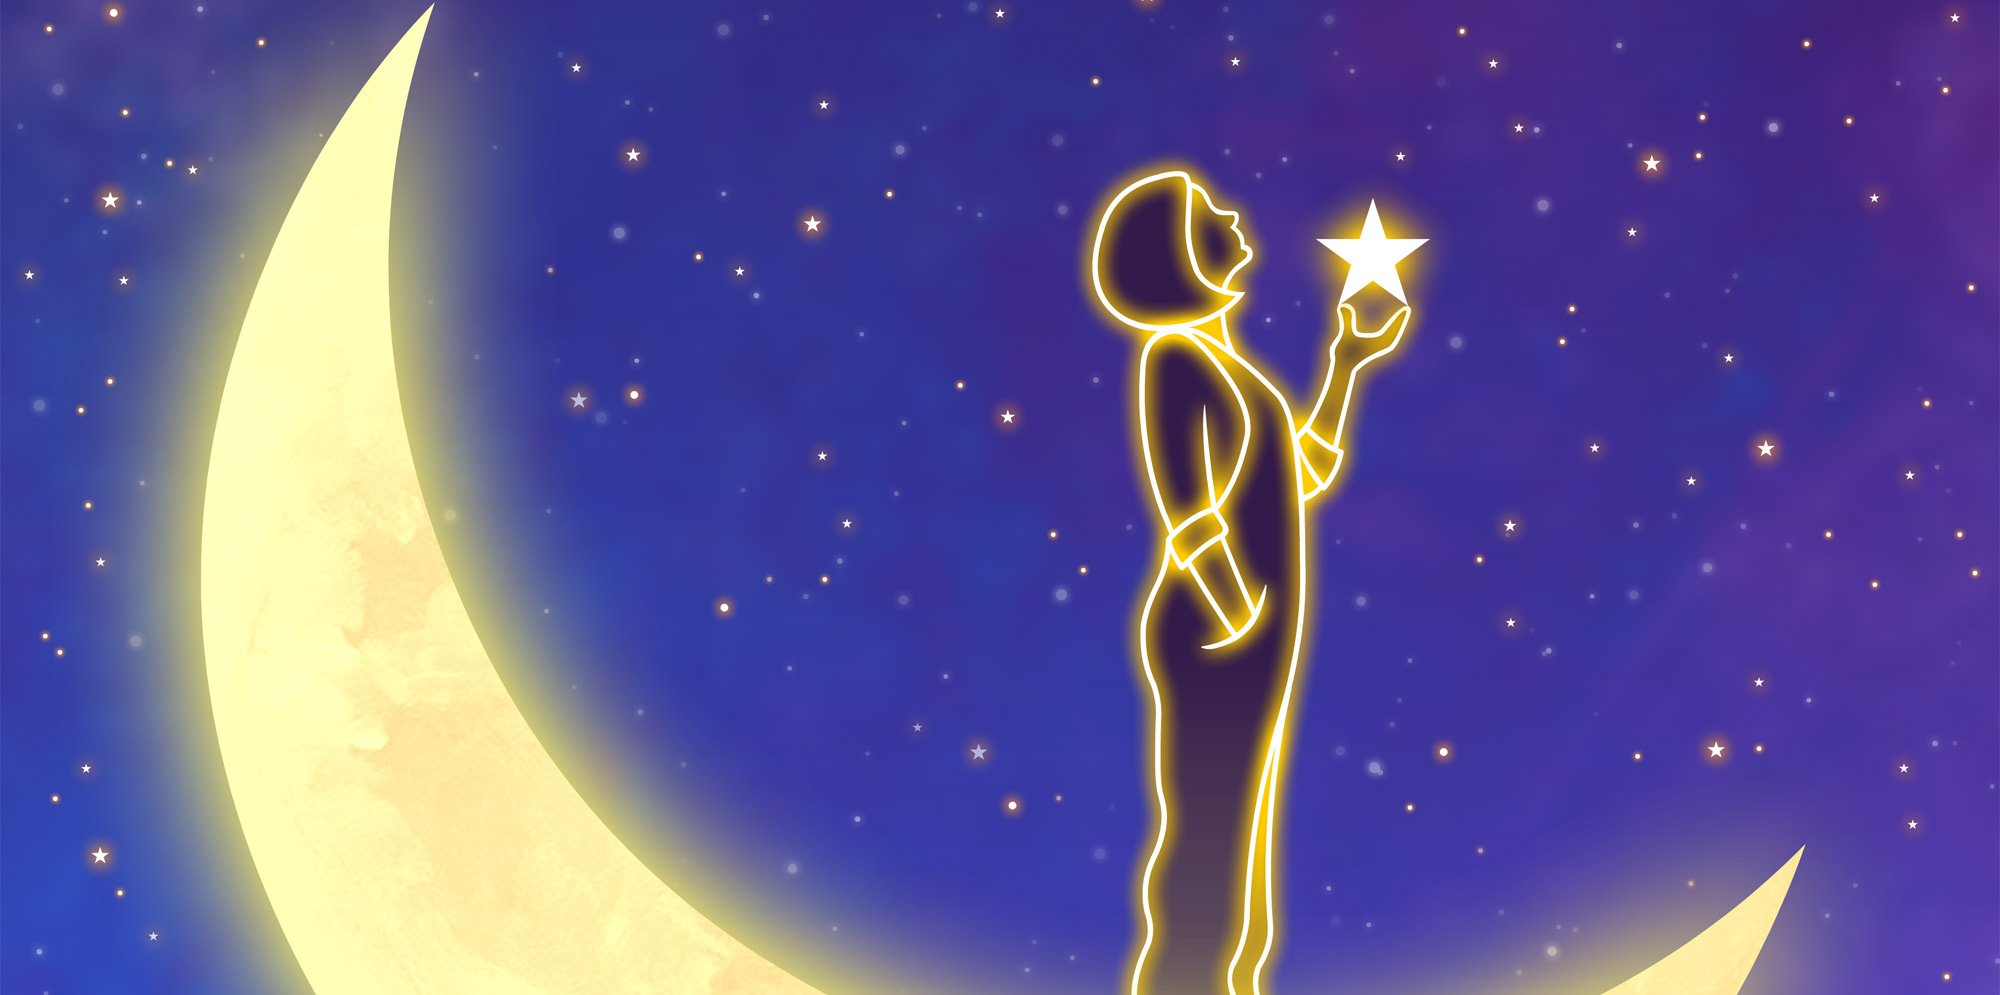 Stella: a figure of girl holding a star outlined by golden glowing lines against a starry sky. A crescent moon glows behind her.